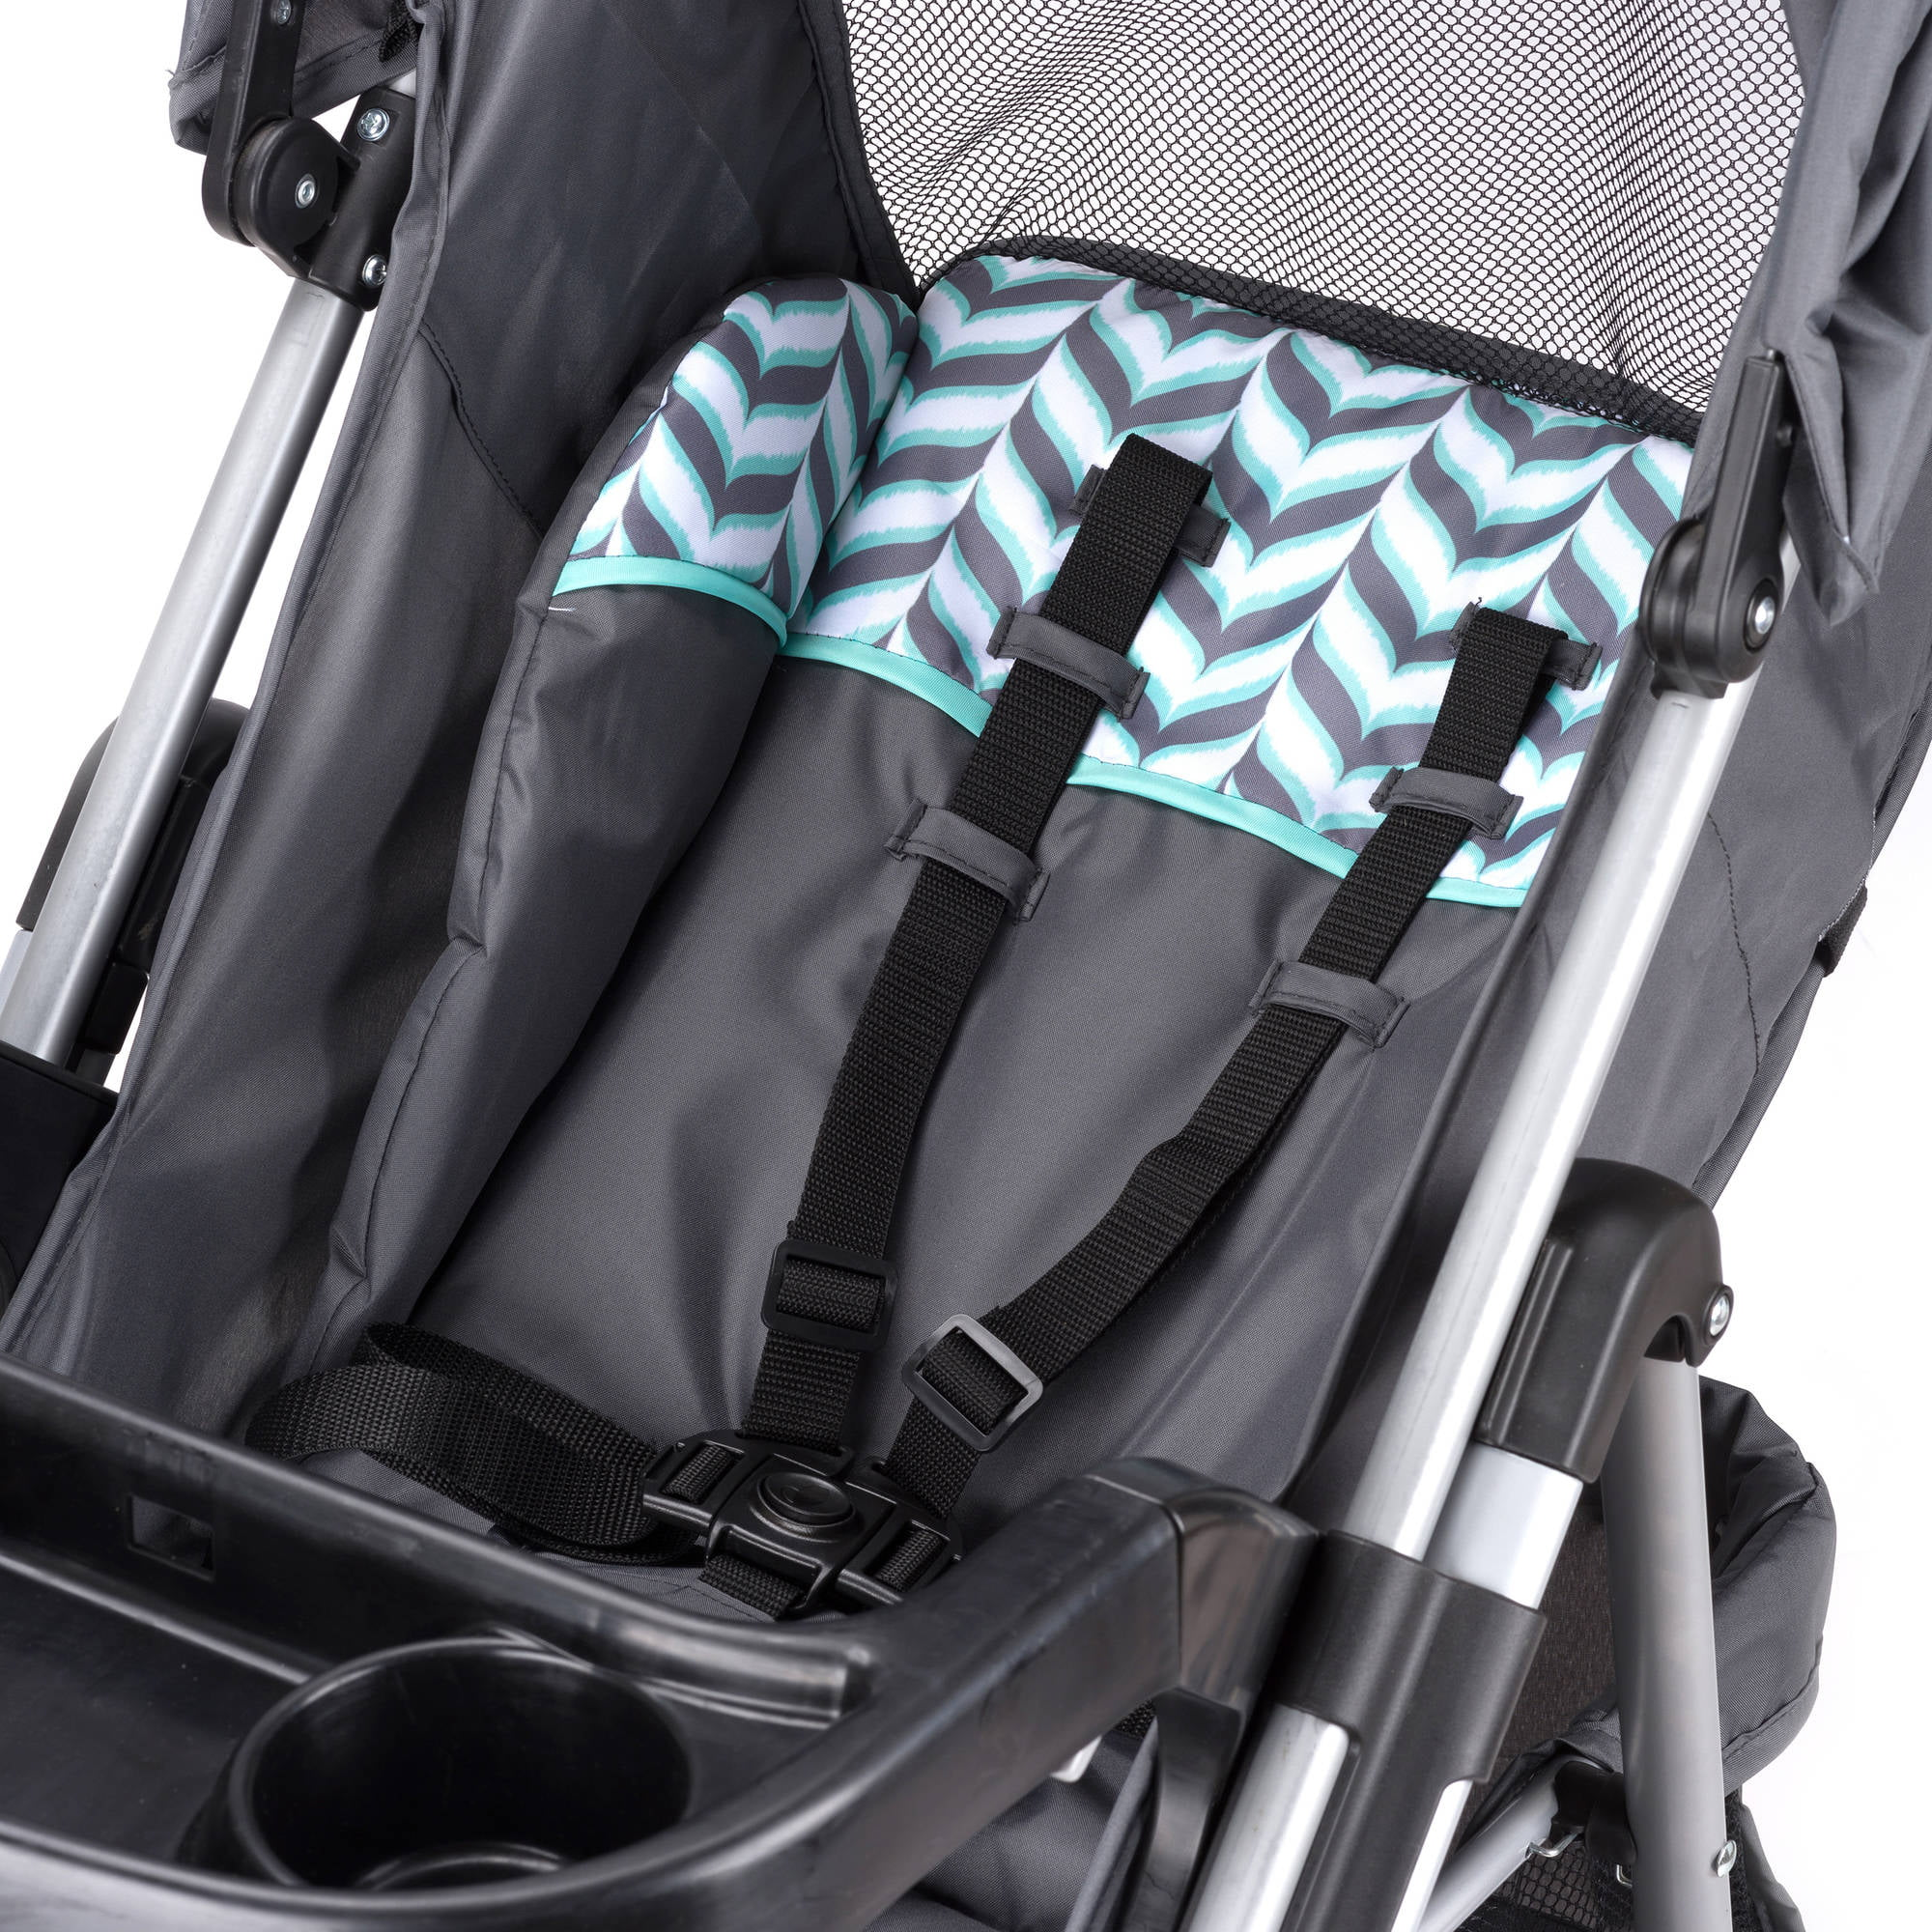 Evenflo Vive Travel System Spearmint Spree